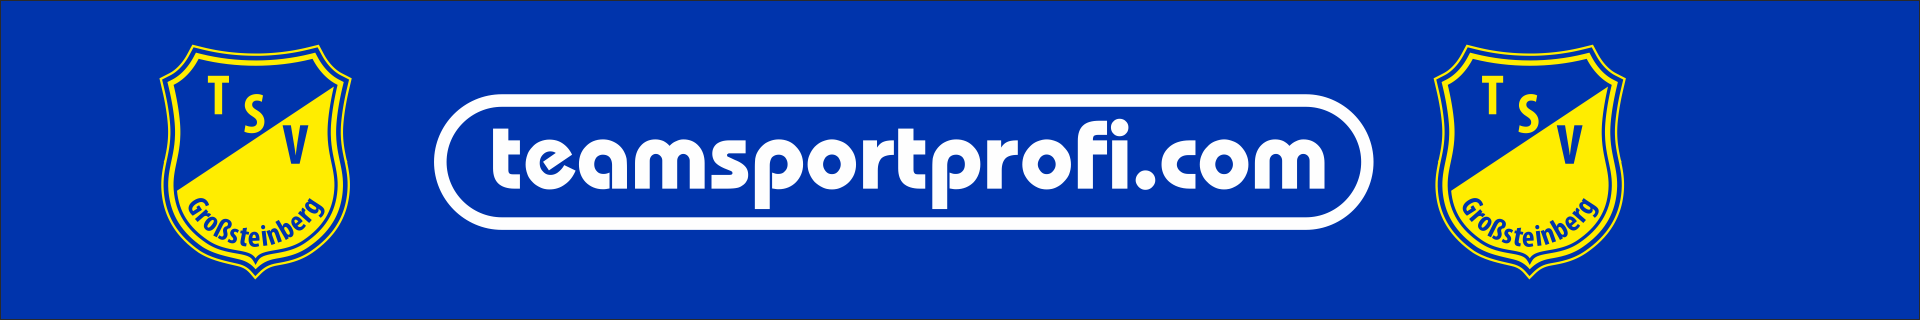 Teamsport Shop